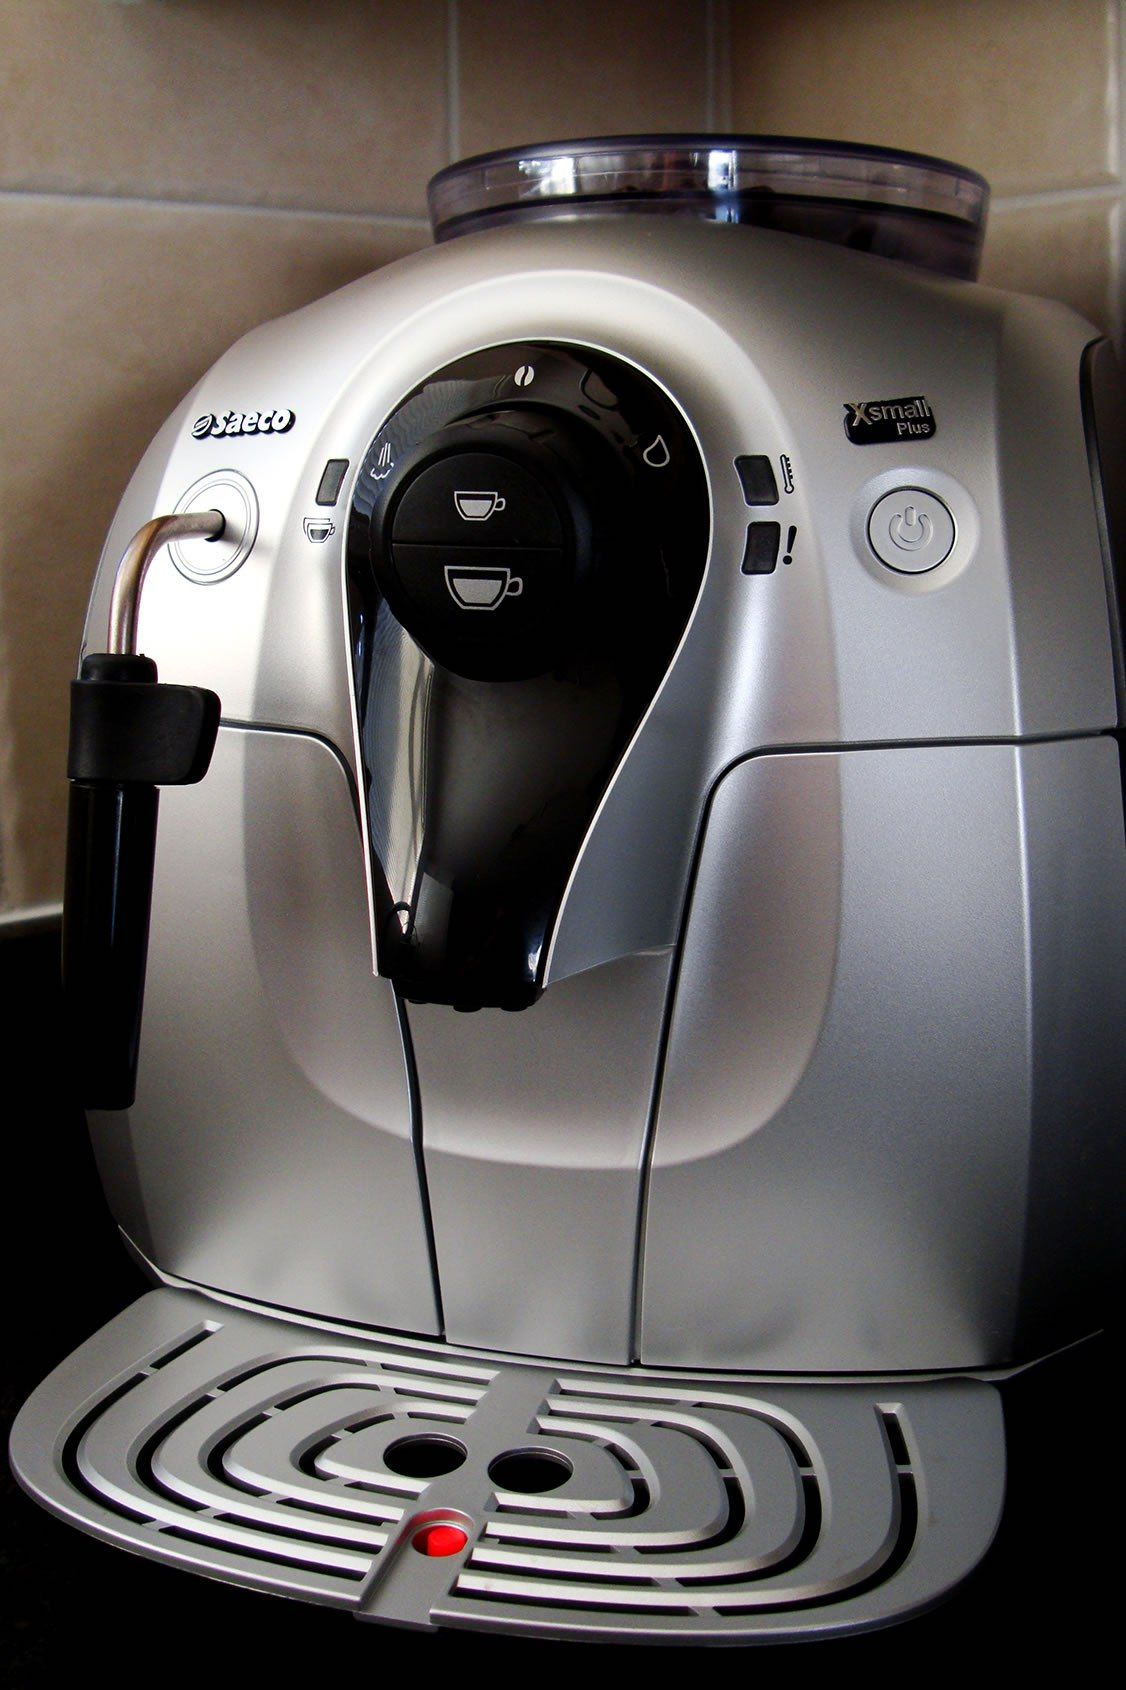 manual vs automatic coffee machines